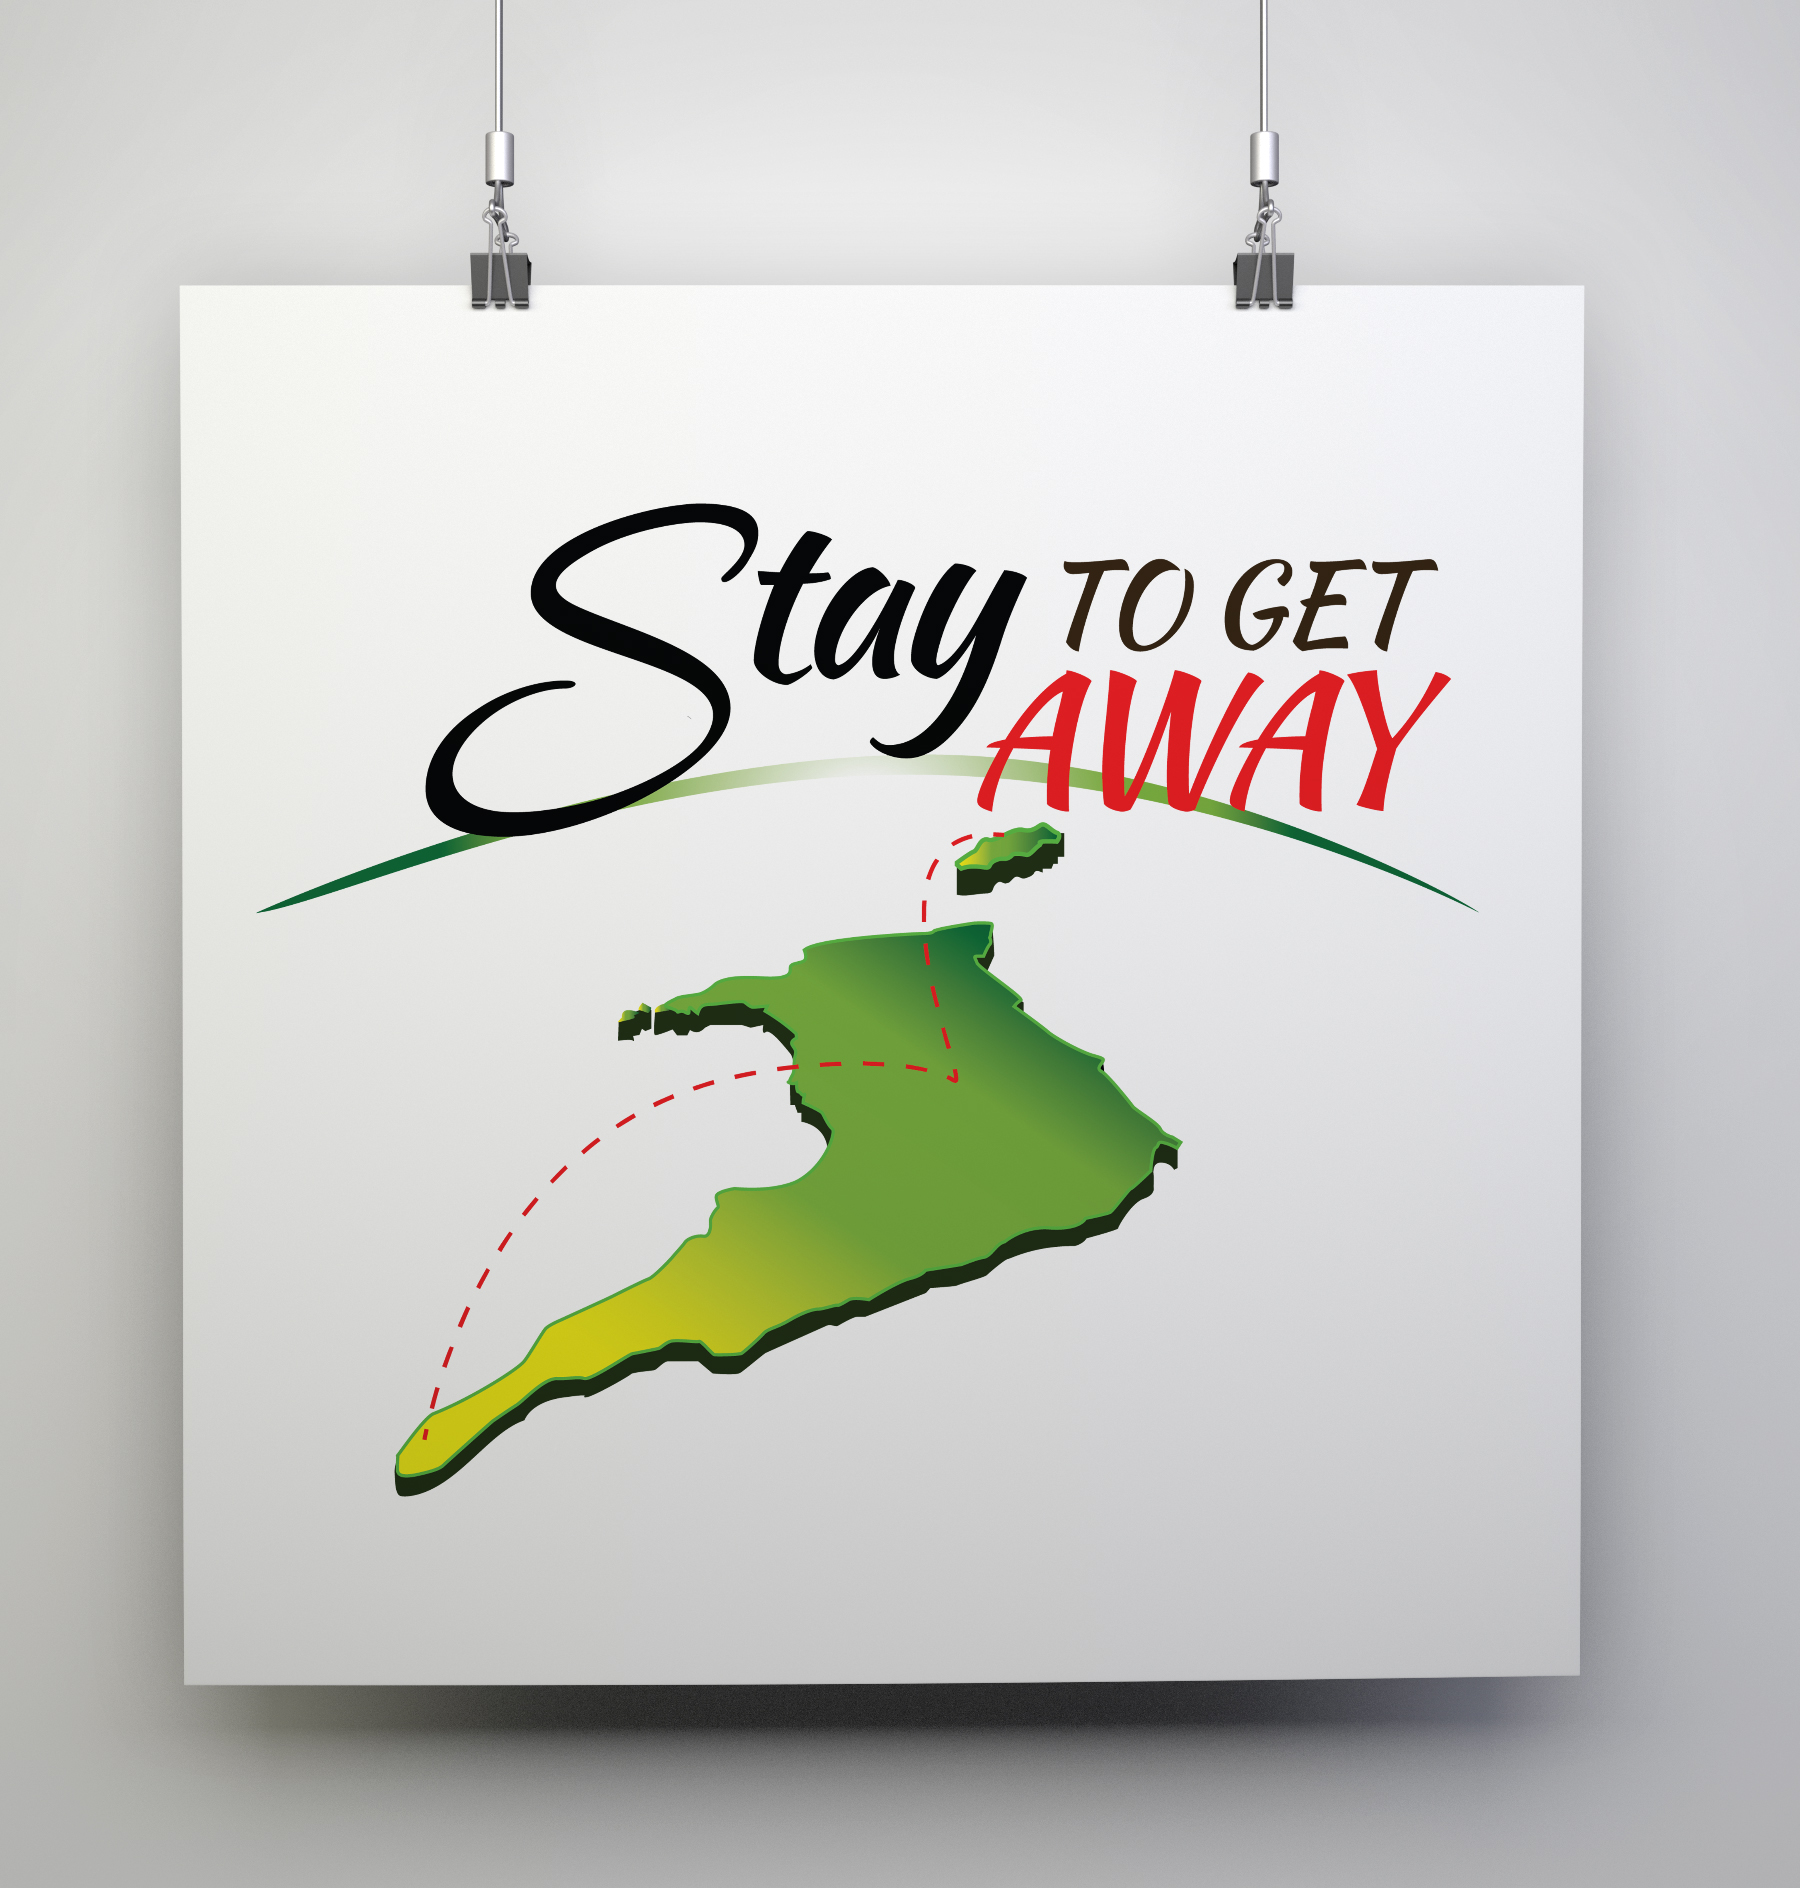 Stay to Get Away 2016 Logo - Client: The Tourism Development Company (TDC)Description: Design a logo for the 2016 Stay to Get Away Campaign. Client requested a simple logo that reflected the nature of the campaign as a domestic tourism campaign. Logo uses a combination of nationalistic colours along with yellow and green as a complimentary pop of colour, engaging the viewers attention. The fonts used are relaxed yet engaging.Year: 2016